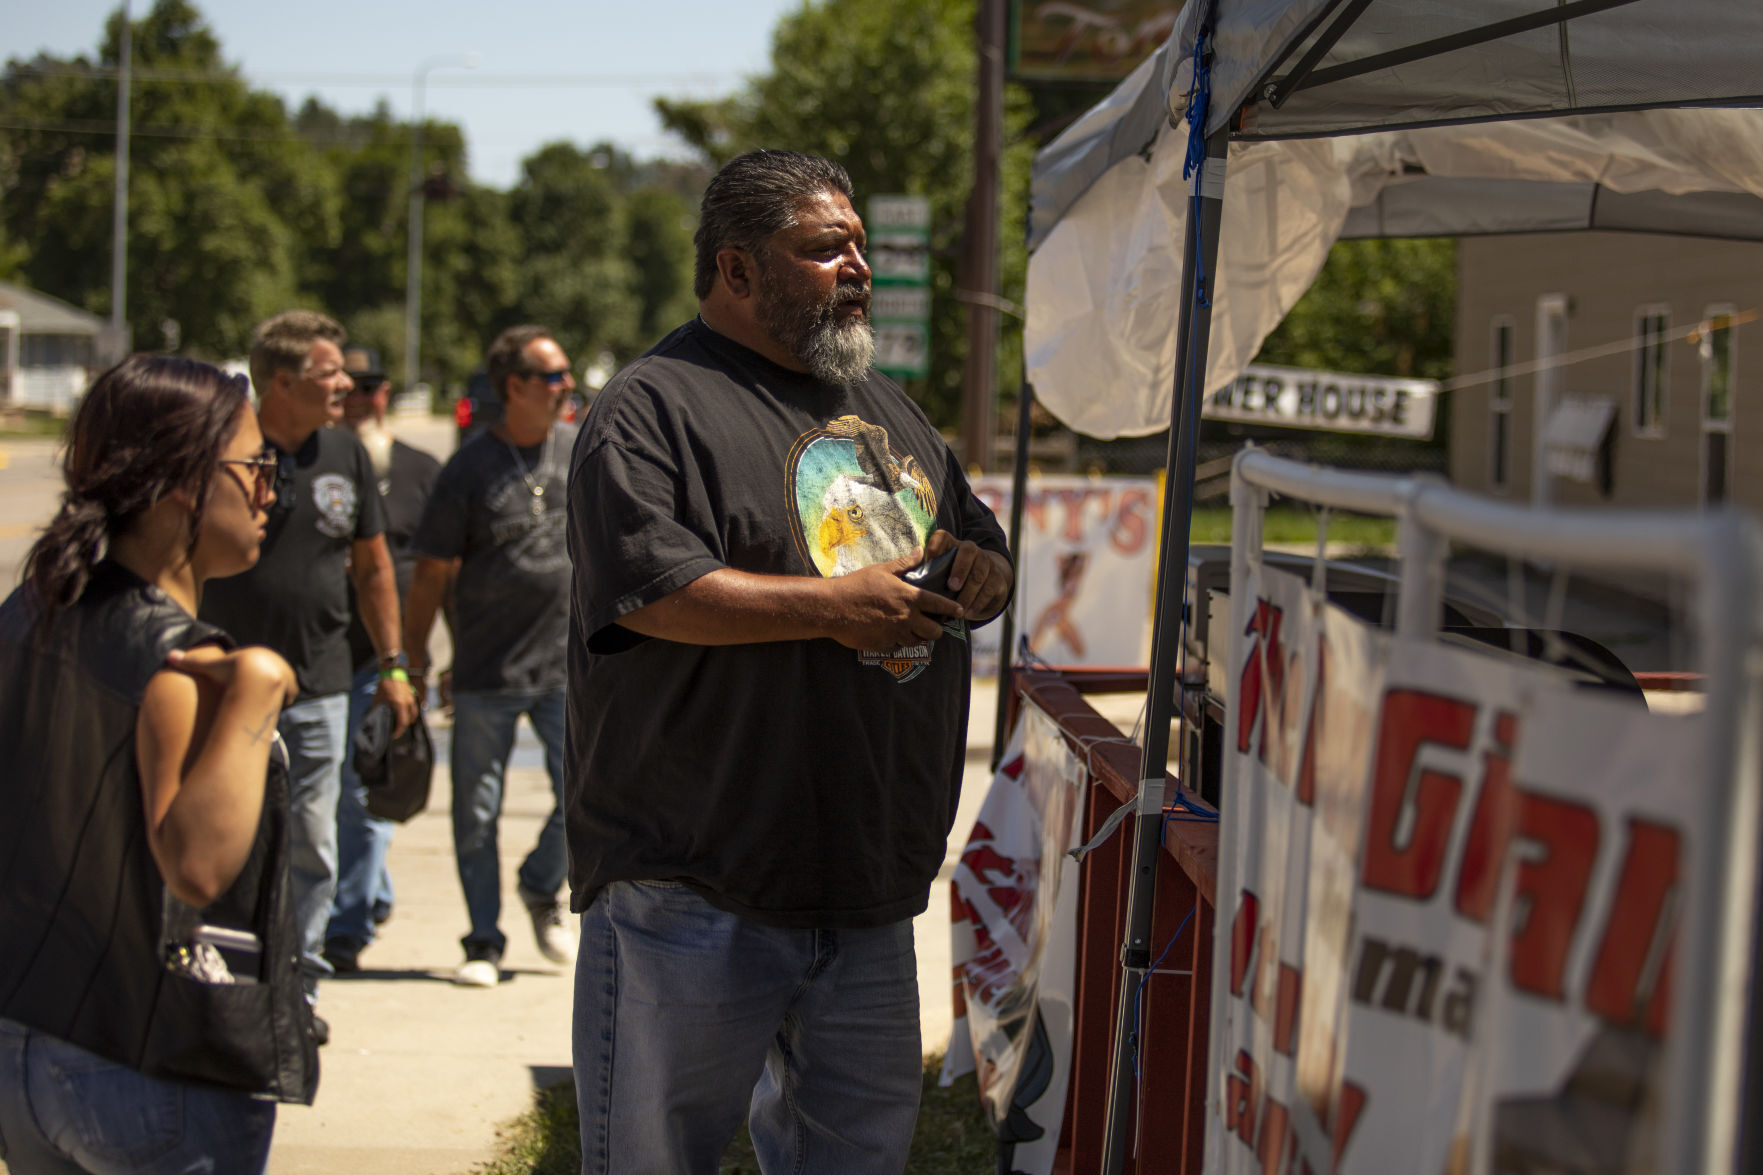 People in Downtown Sturgis Gear Up for Rally